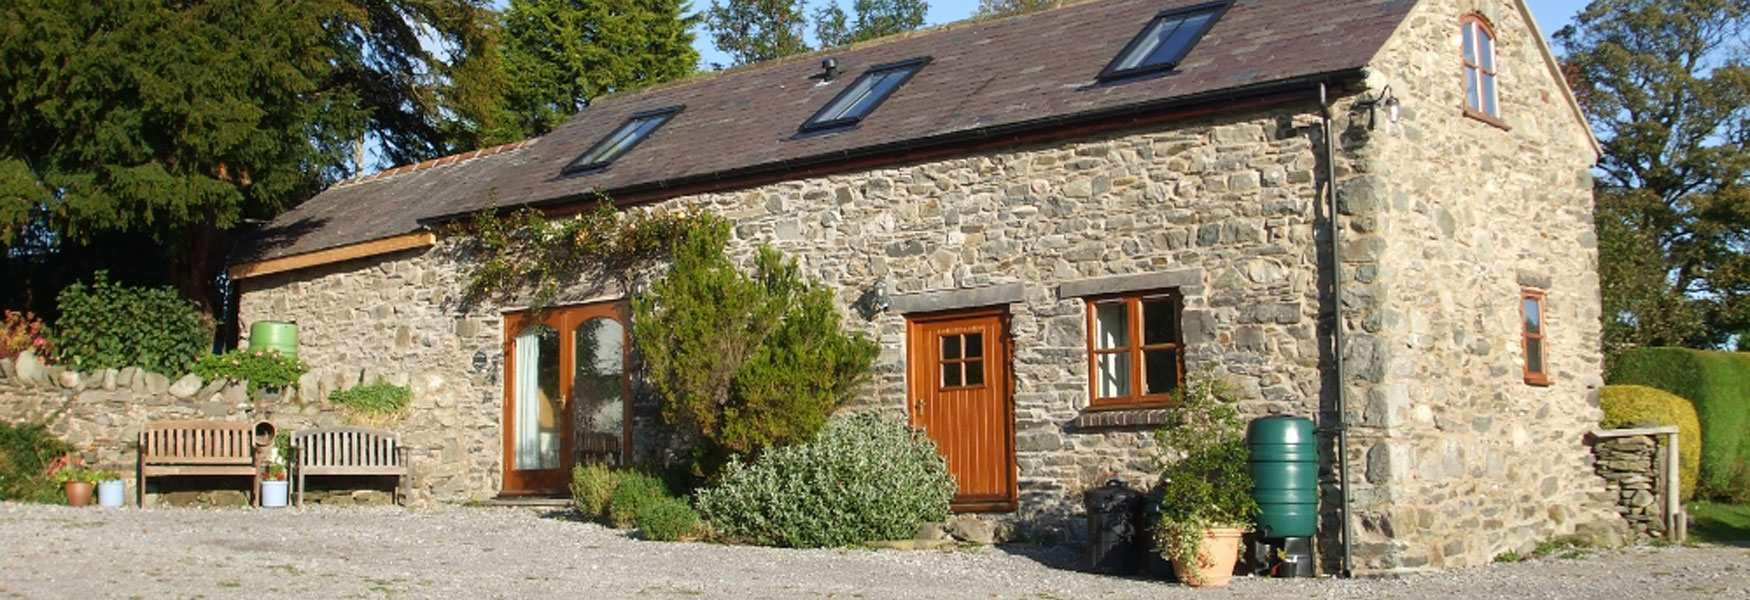 cottage the stables private cottages aberystwyth wales rent for patio barn conversion your in character to rental peace mid